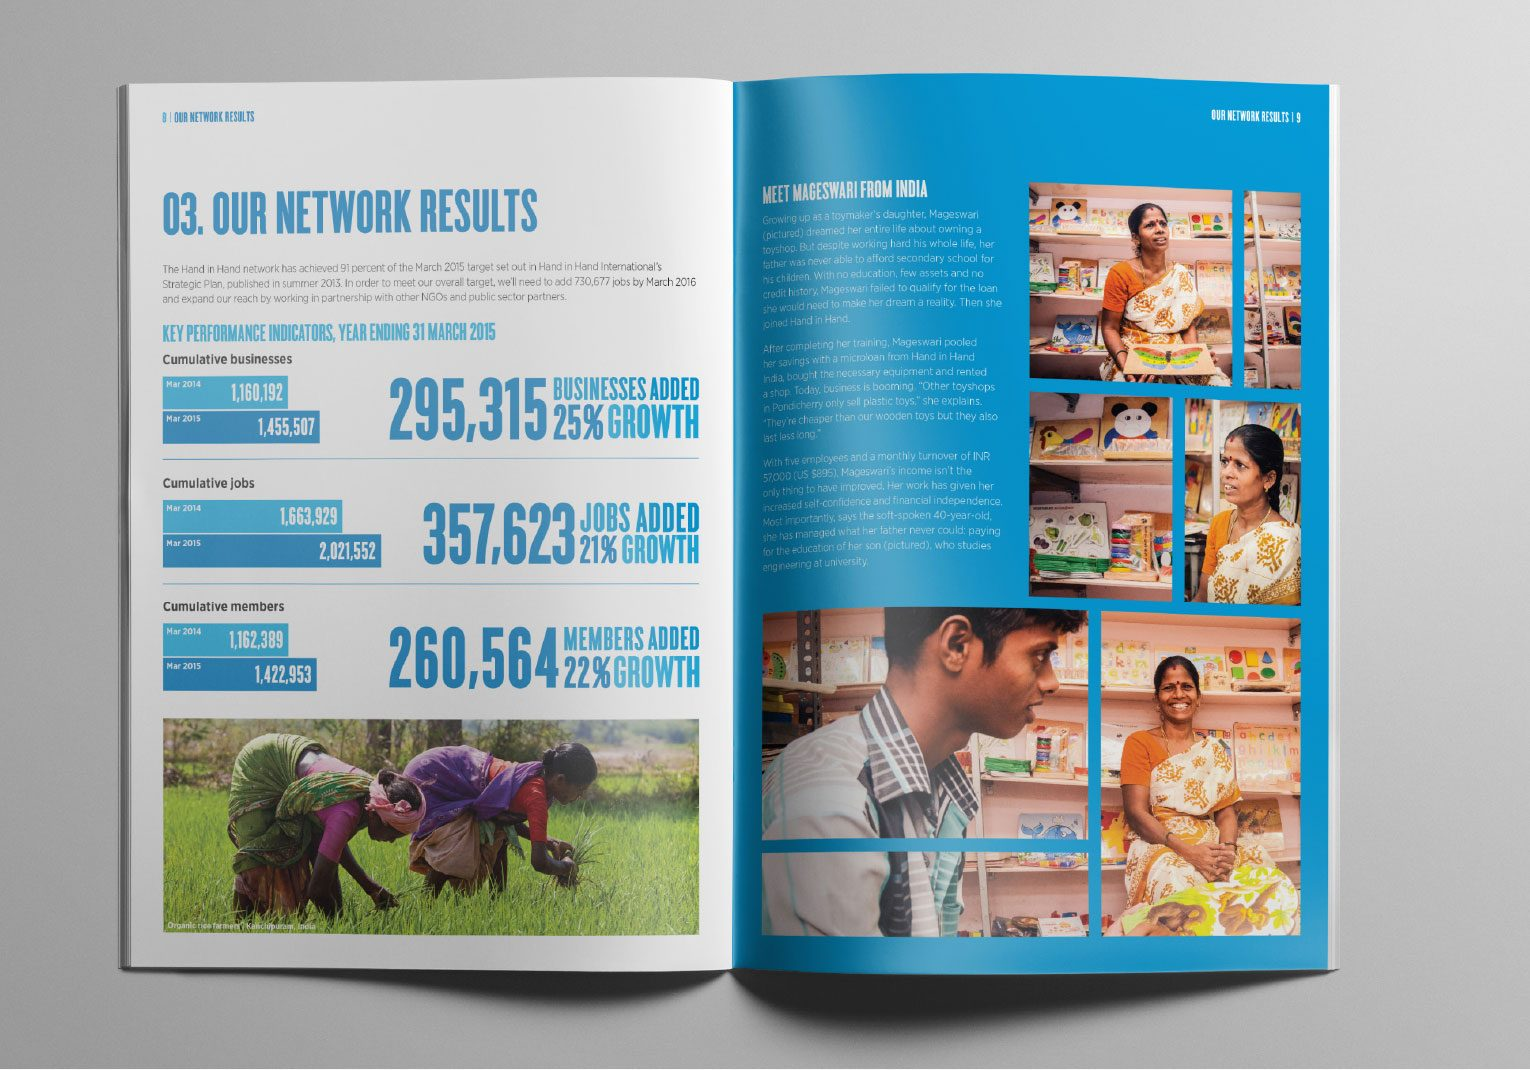 Impact stats and case study from the Hand in Hand Annual Report